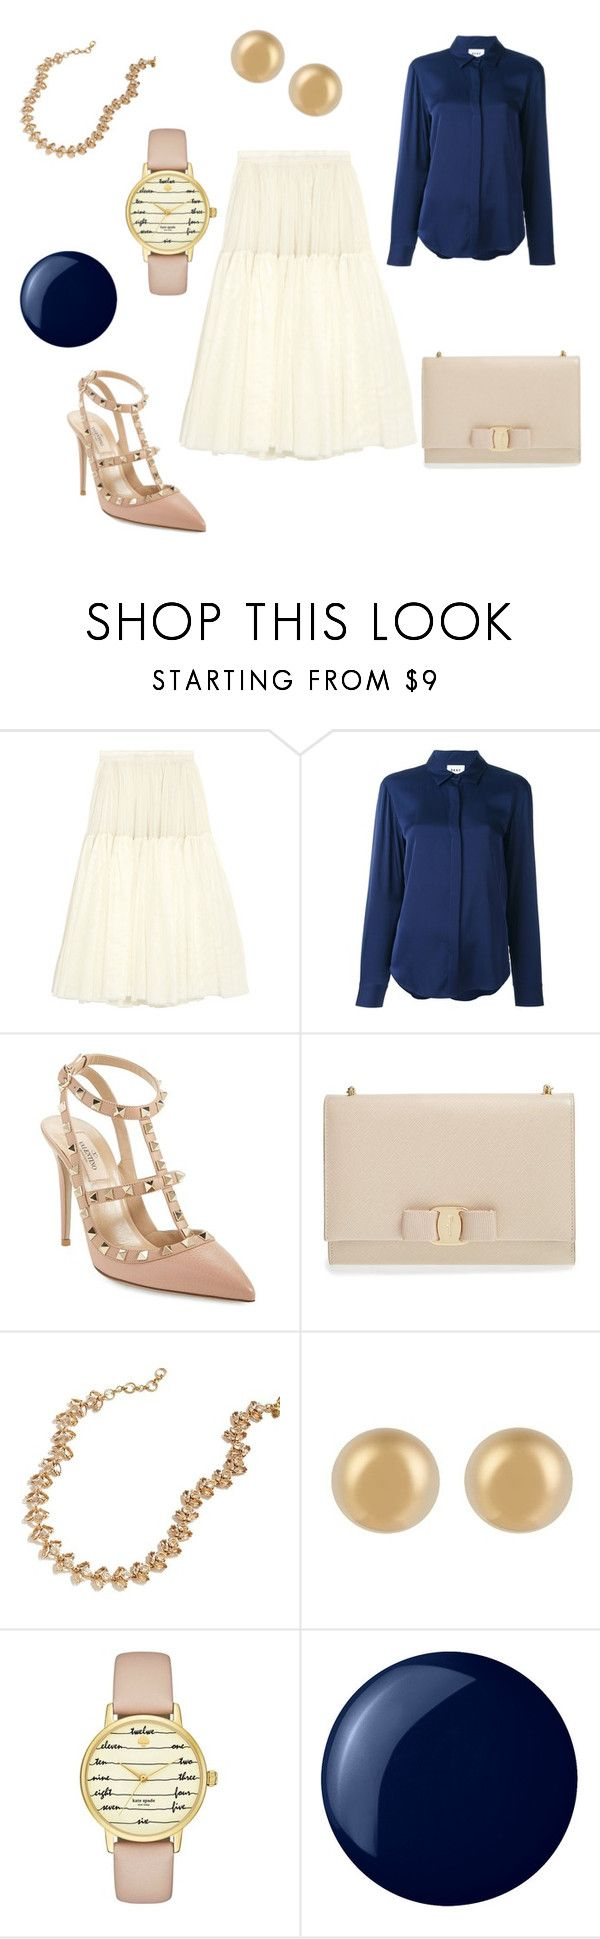 """""""Fashion Weekend: September 17th & September 18th"""" by antiadamo on Polyvore featuring Needle & Thread, DKNY, Valentino, Salvatore Ferragamo, J.Crew, J.W. Anderson, Kate Spade and Essie"""